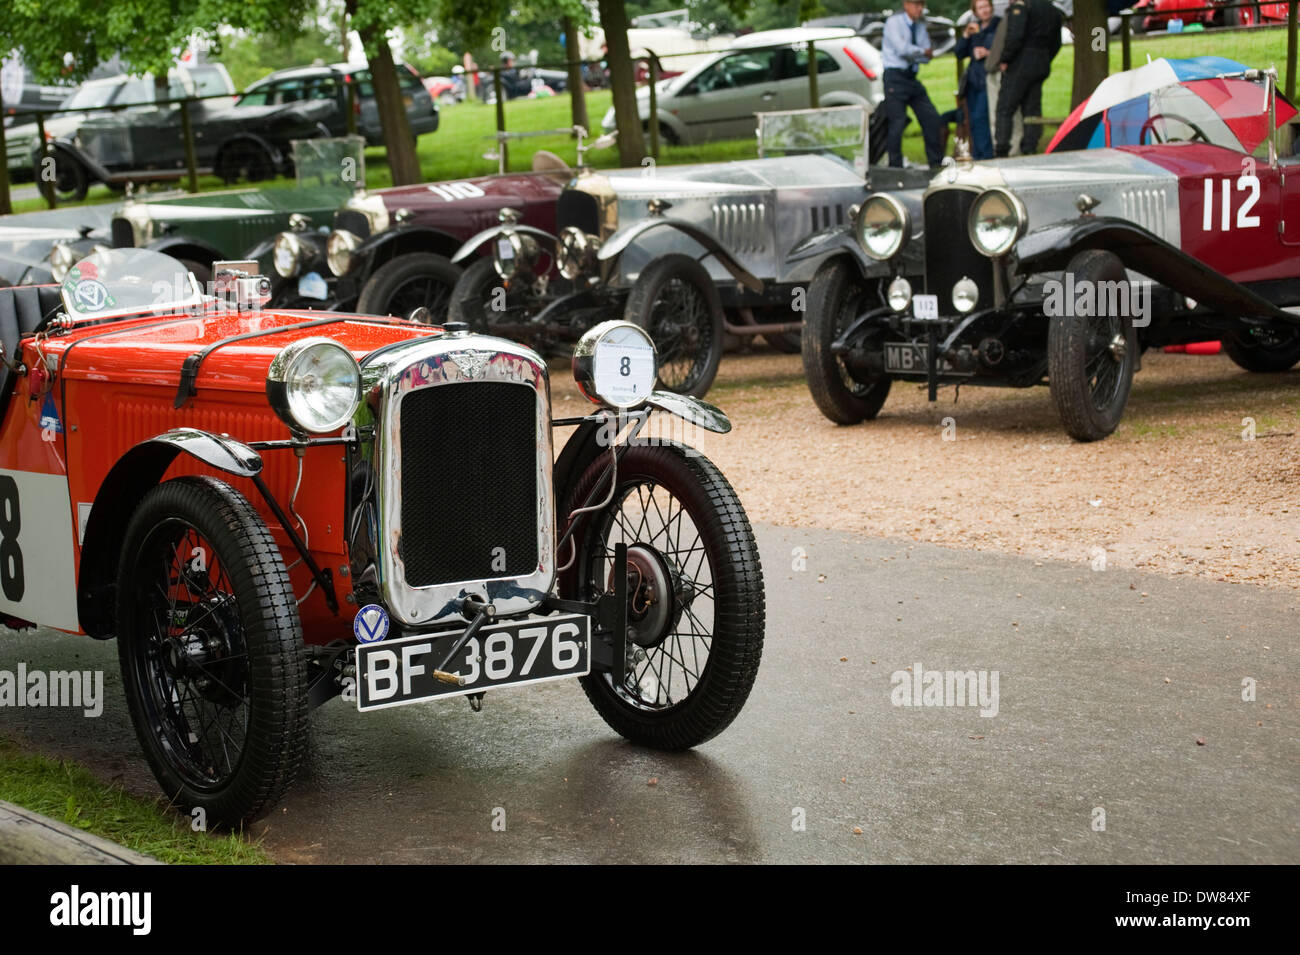 A vintage 1930s Austin 7-The Toy, parked in front of 1920s Vauxhalls at the VSCC  Hill Climb, Gloucestershire, England, UK. - Stock Image